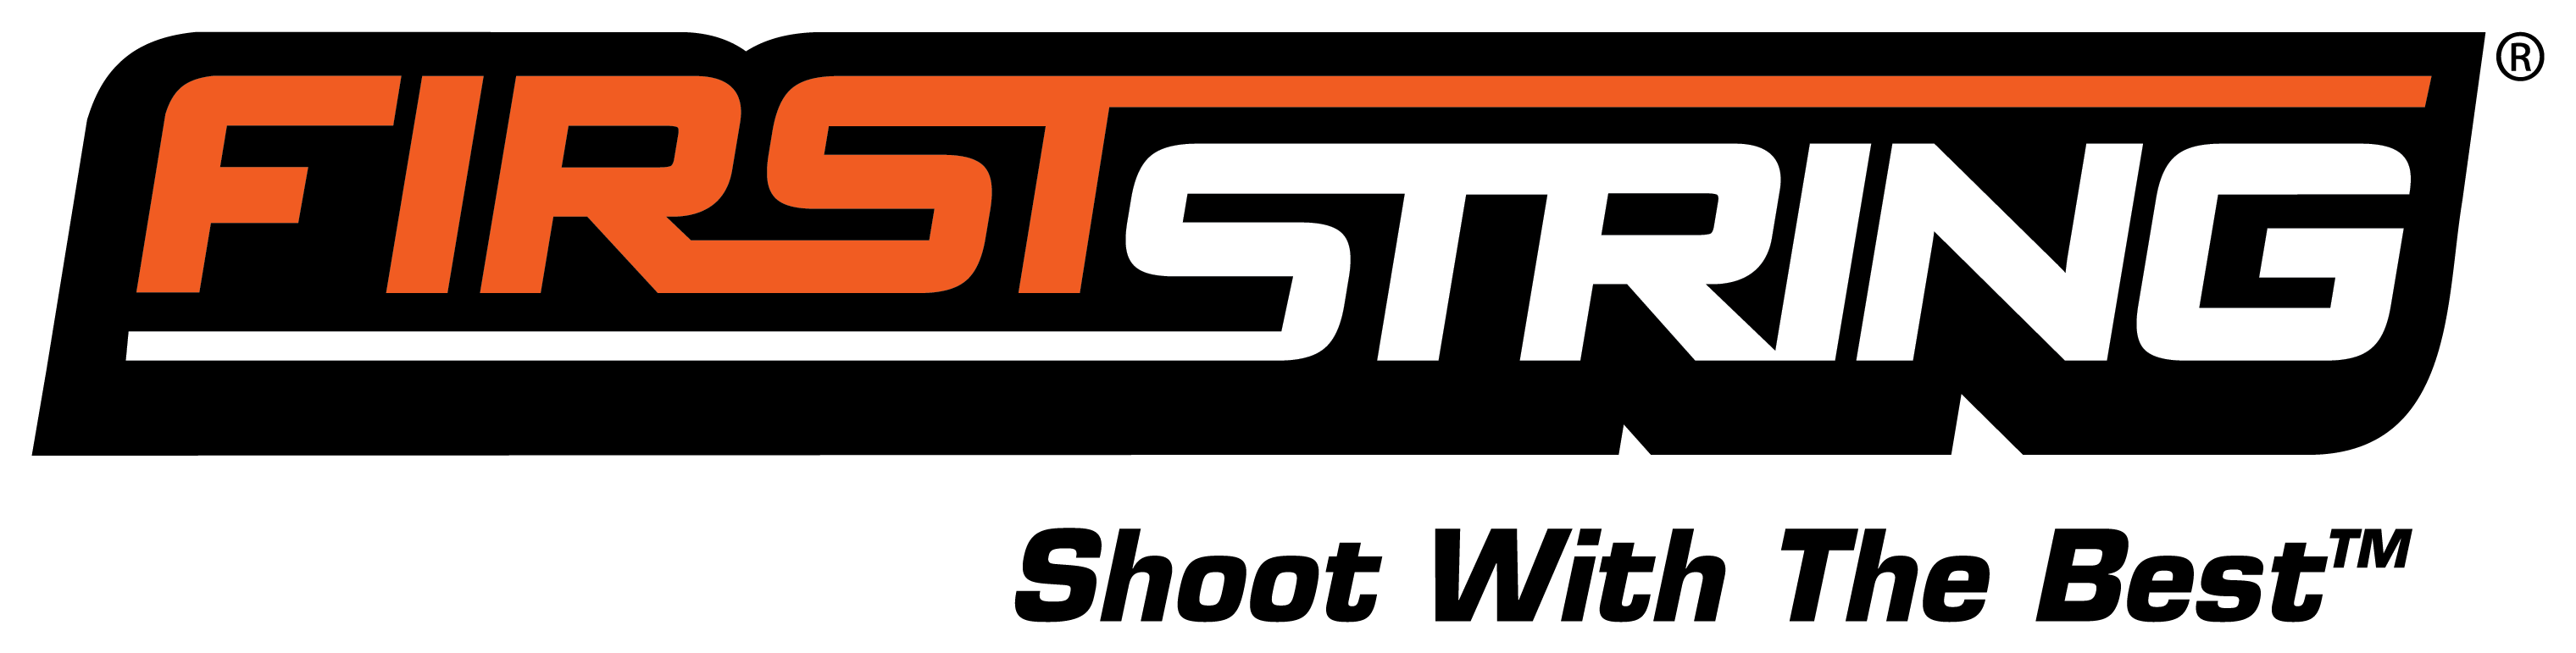 First String logo